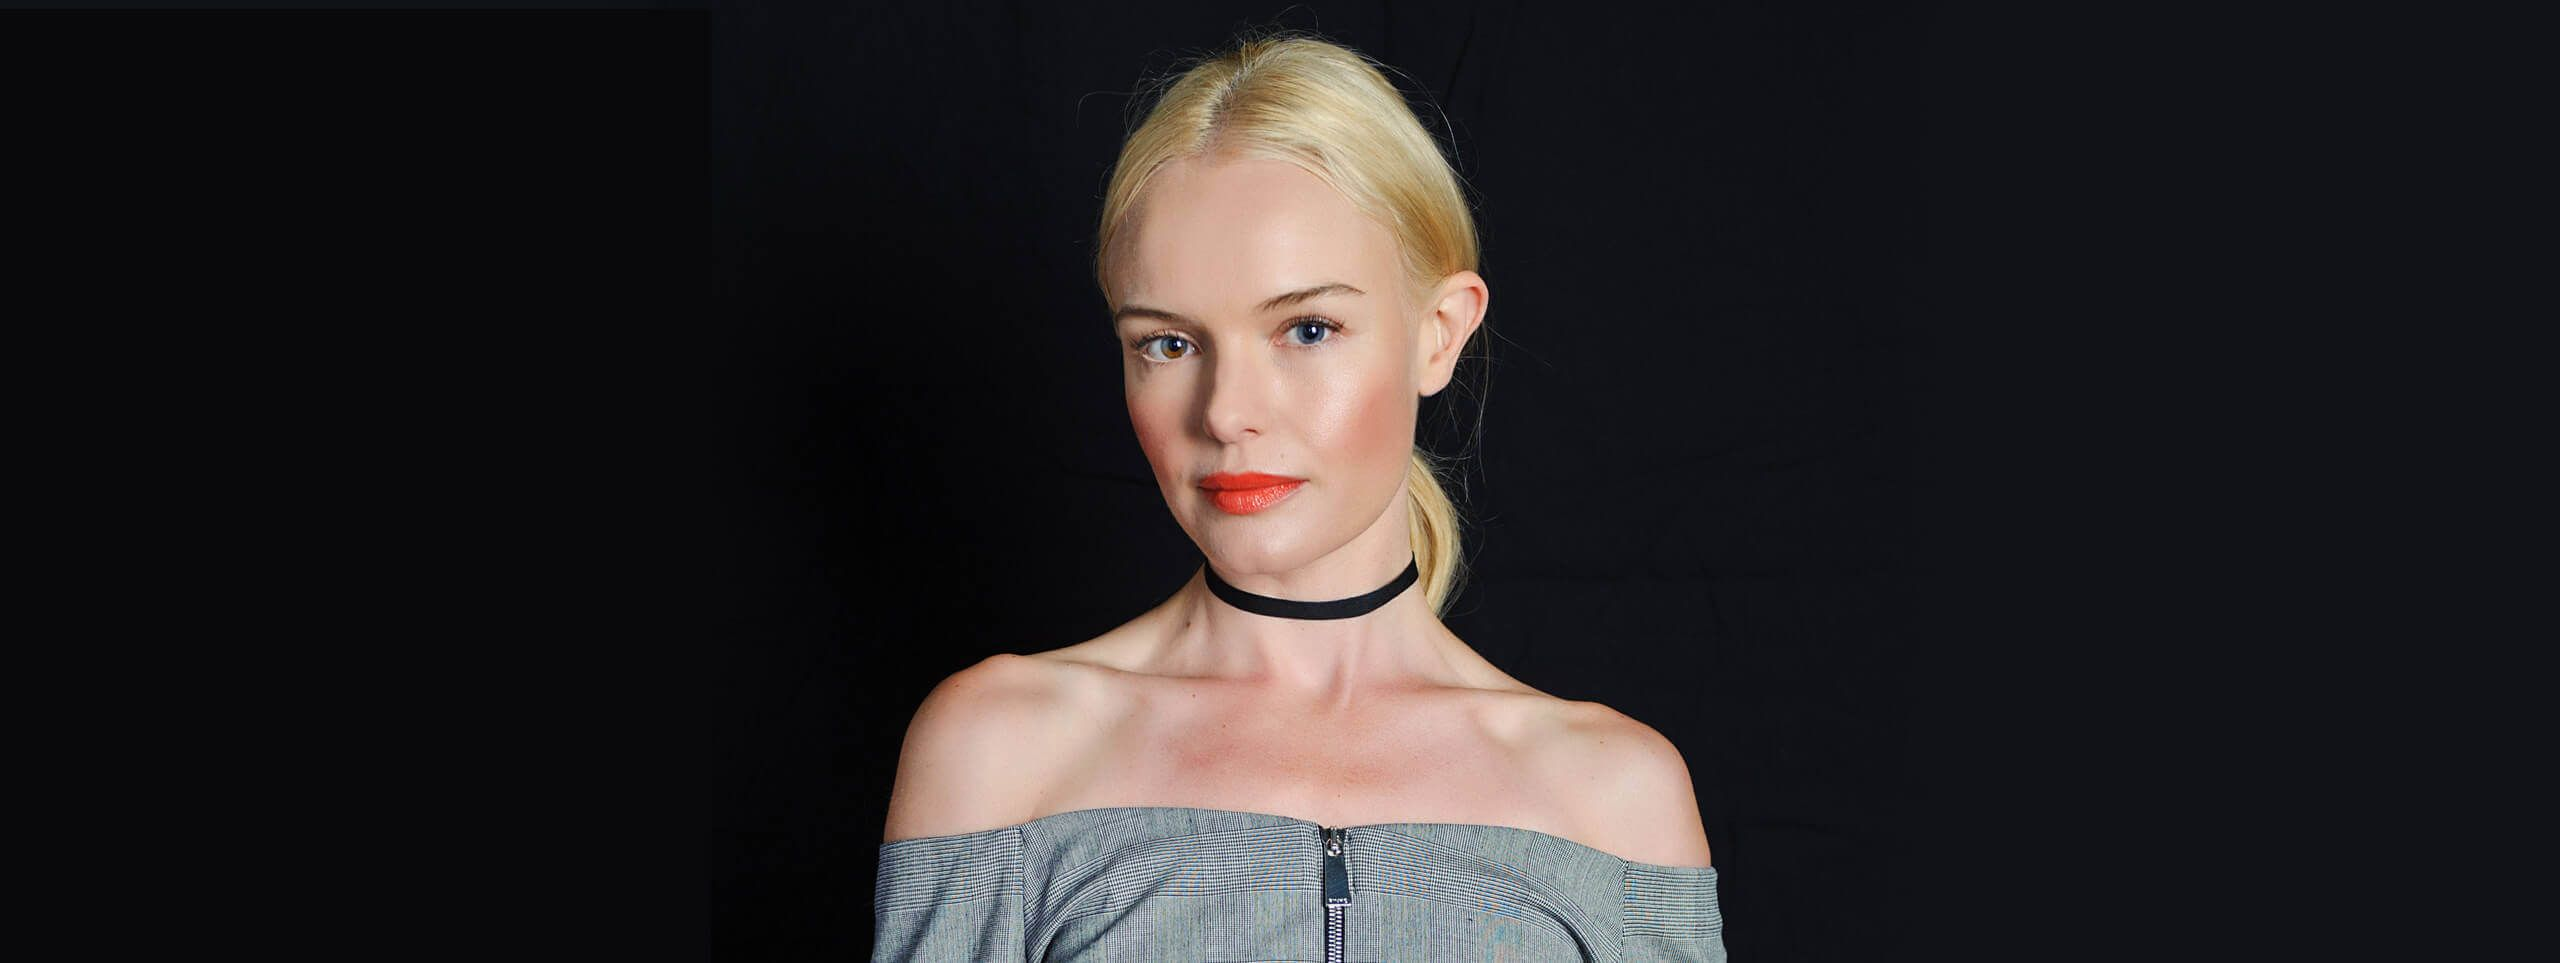 Celebrity hairstyle with tied up blonde hair